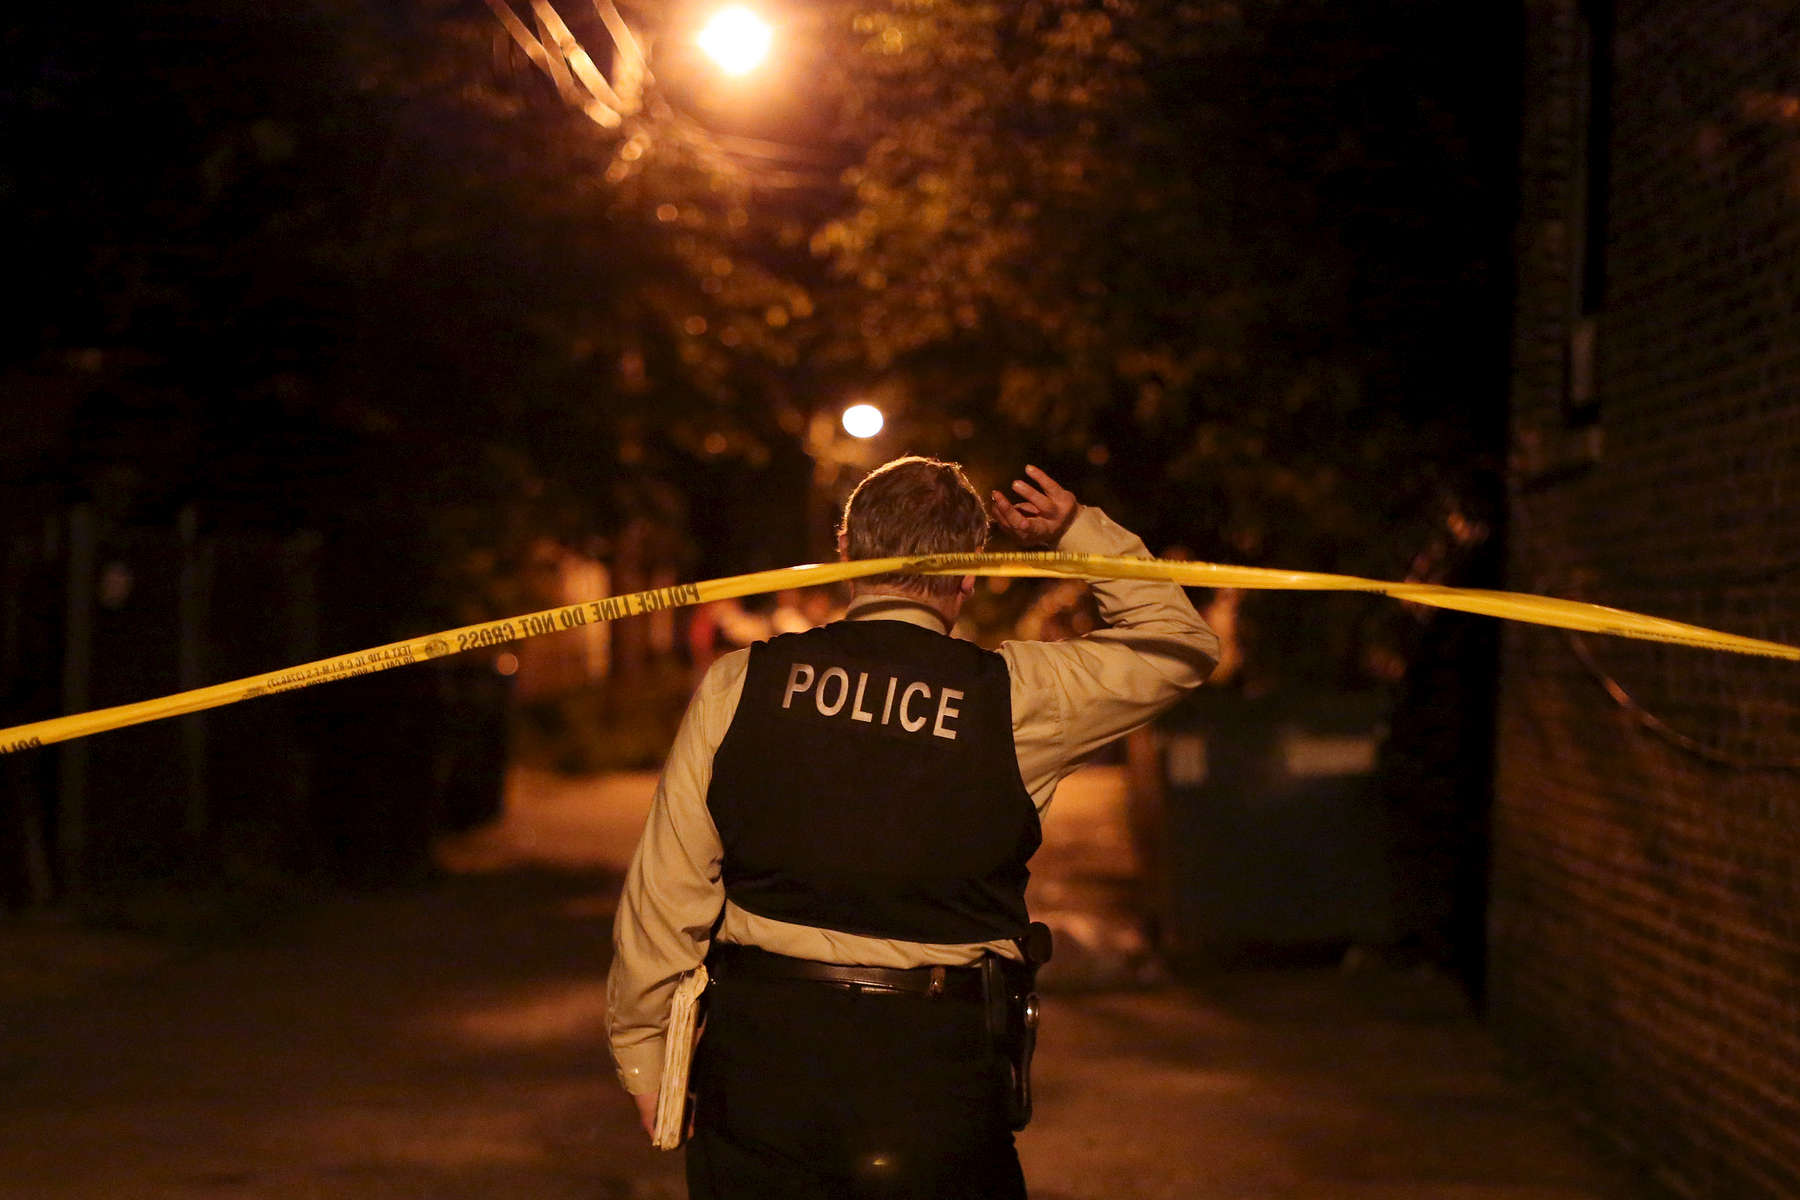 A detective crosses under police tape at the scene where officers exchanged gunfire with a man near the intersection of West 64th Street and South Campbell Avenue in Chicago.